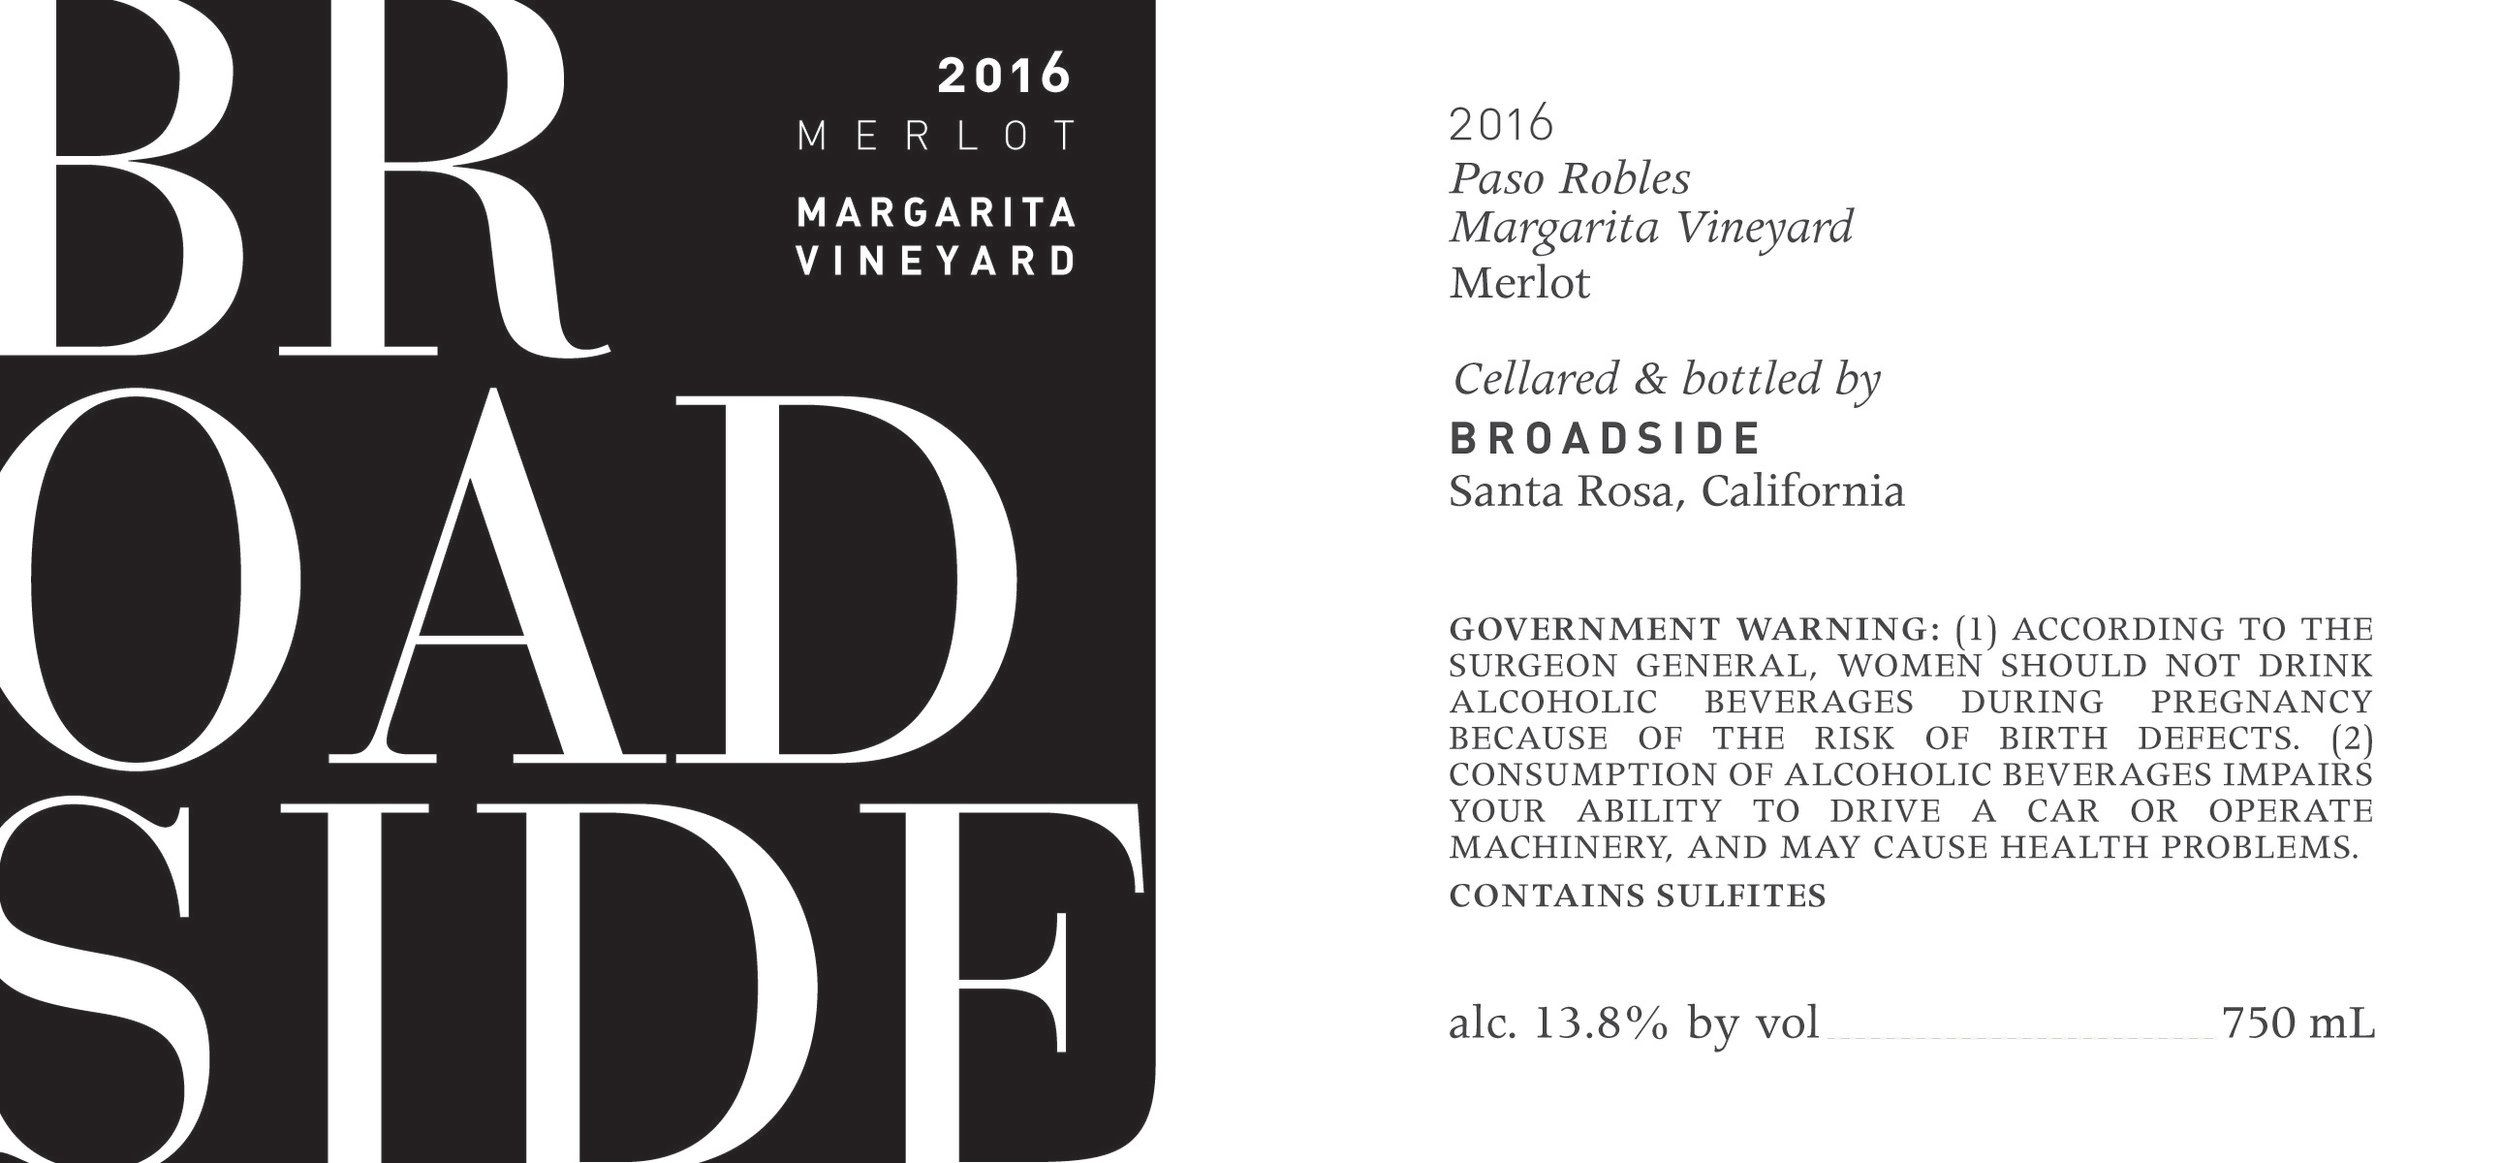 Broadside Margarita Vineyard Merlot 2016 Front Label